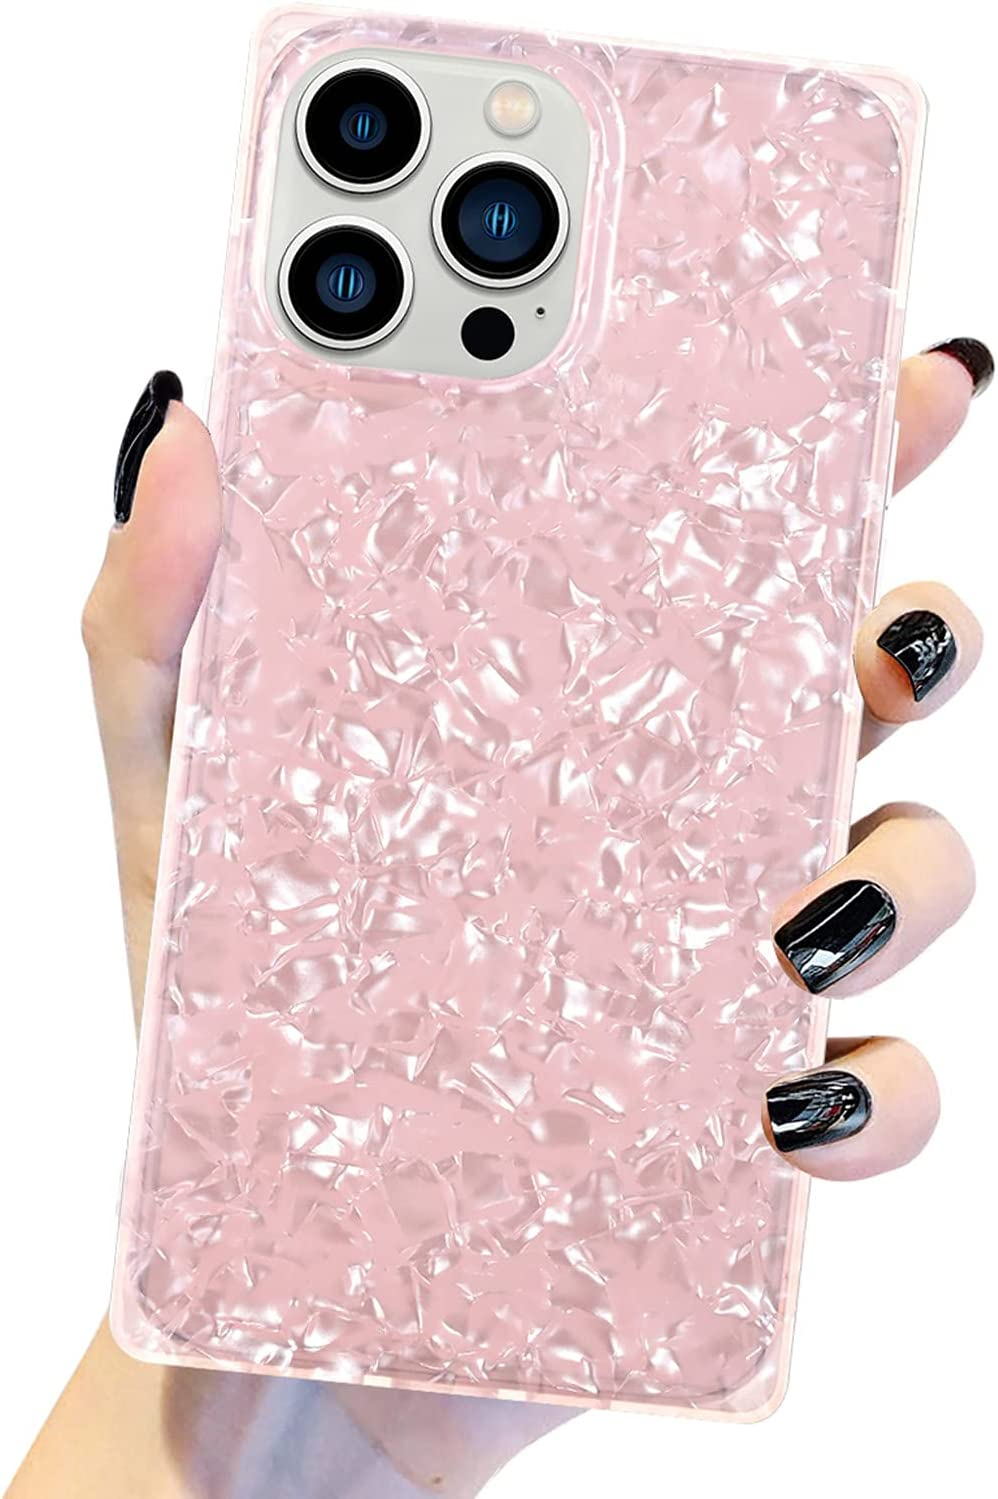 Muntinfe Designed for iPhone 13 Pro Case 6.1 Inch, Cute Fashion Pearl Sparkle Glitter Square Marble Slim Case for Women Girls Soft TPU Silicone Protective Shockproof Phone Cover, Pink